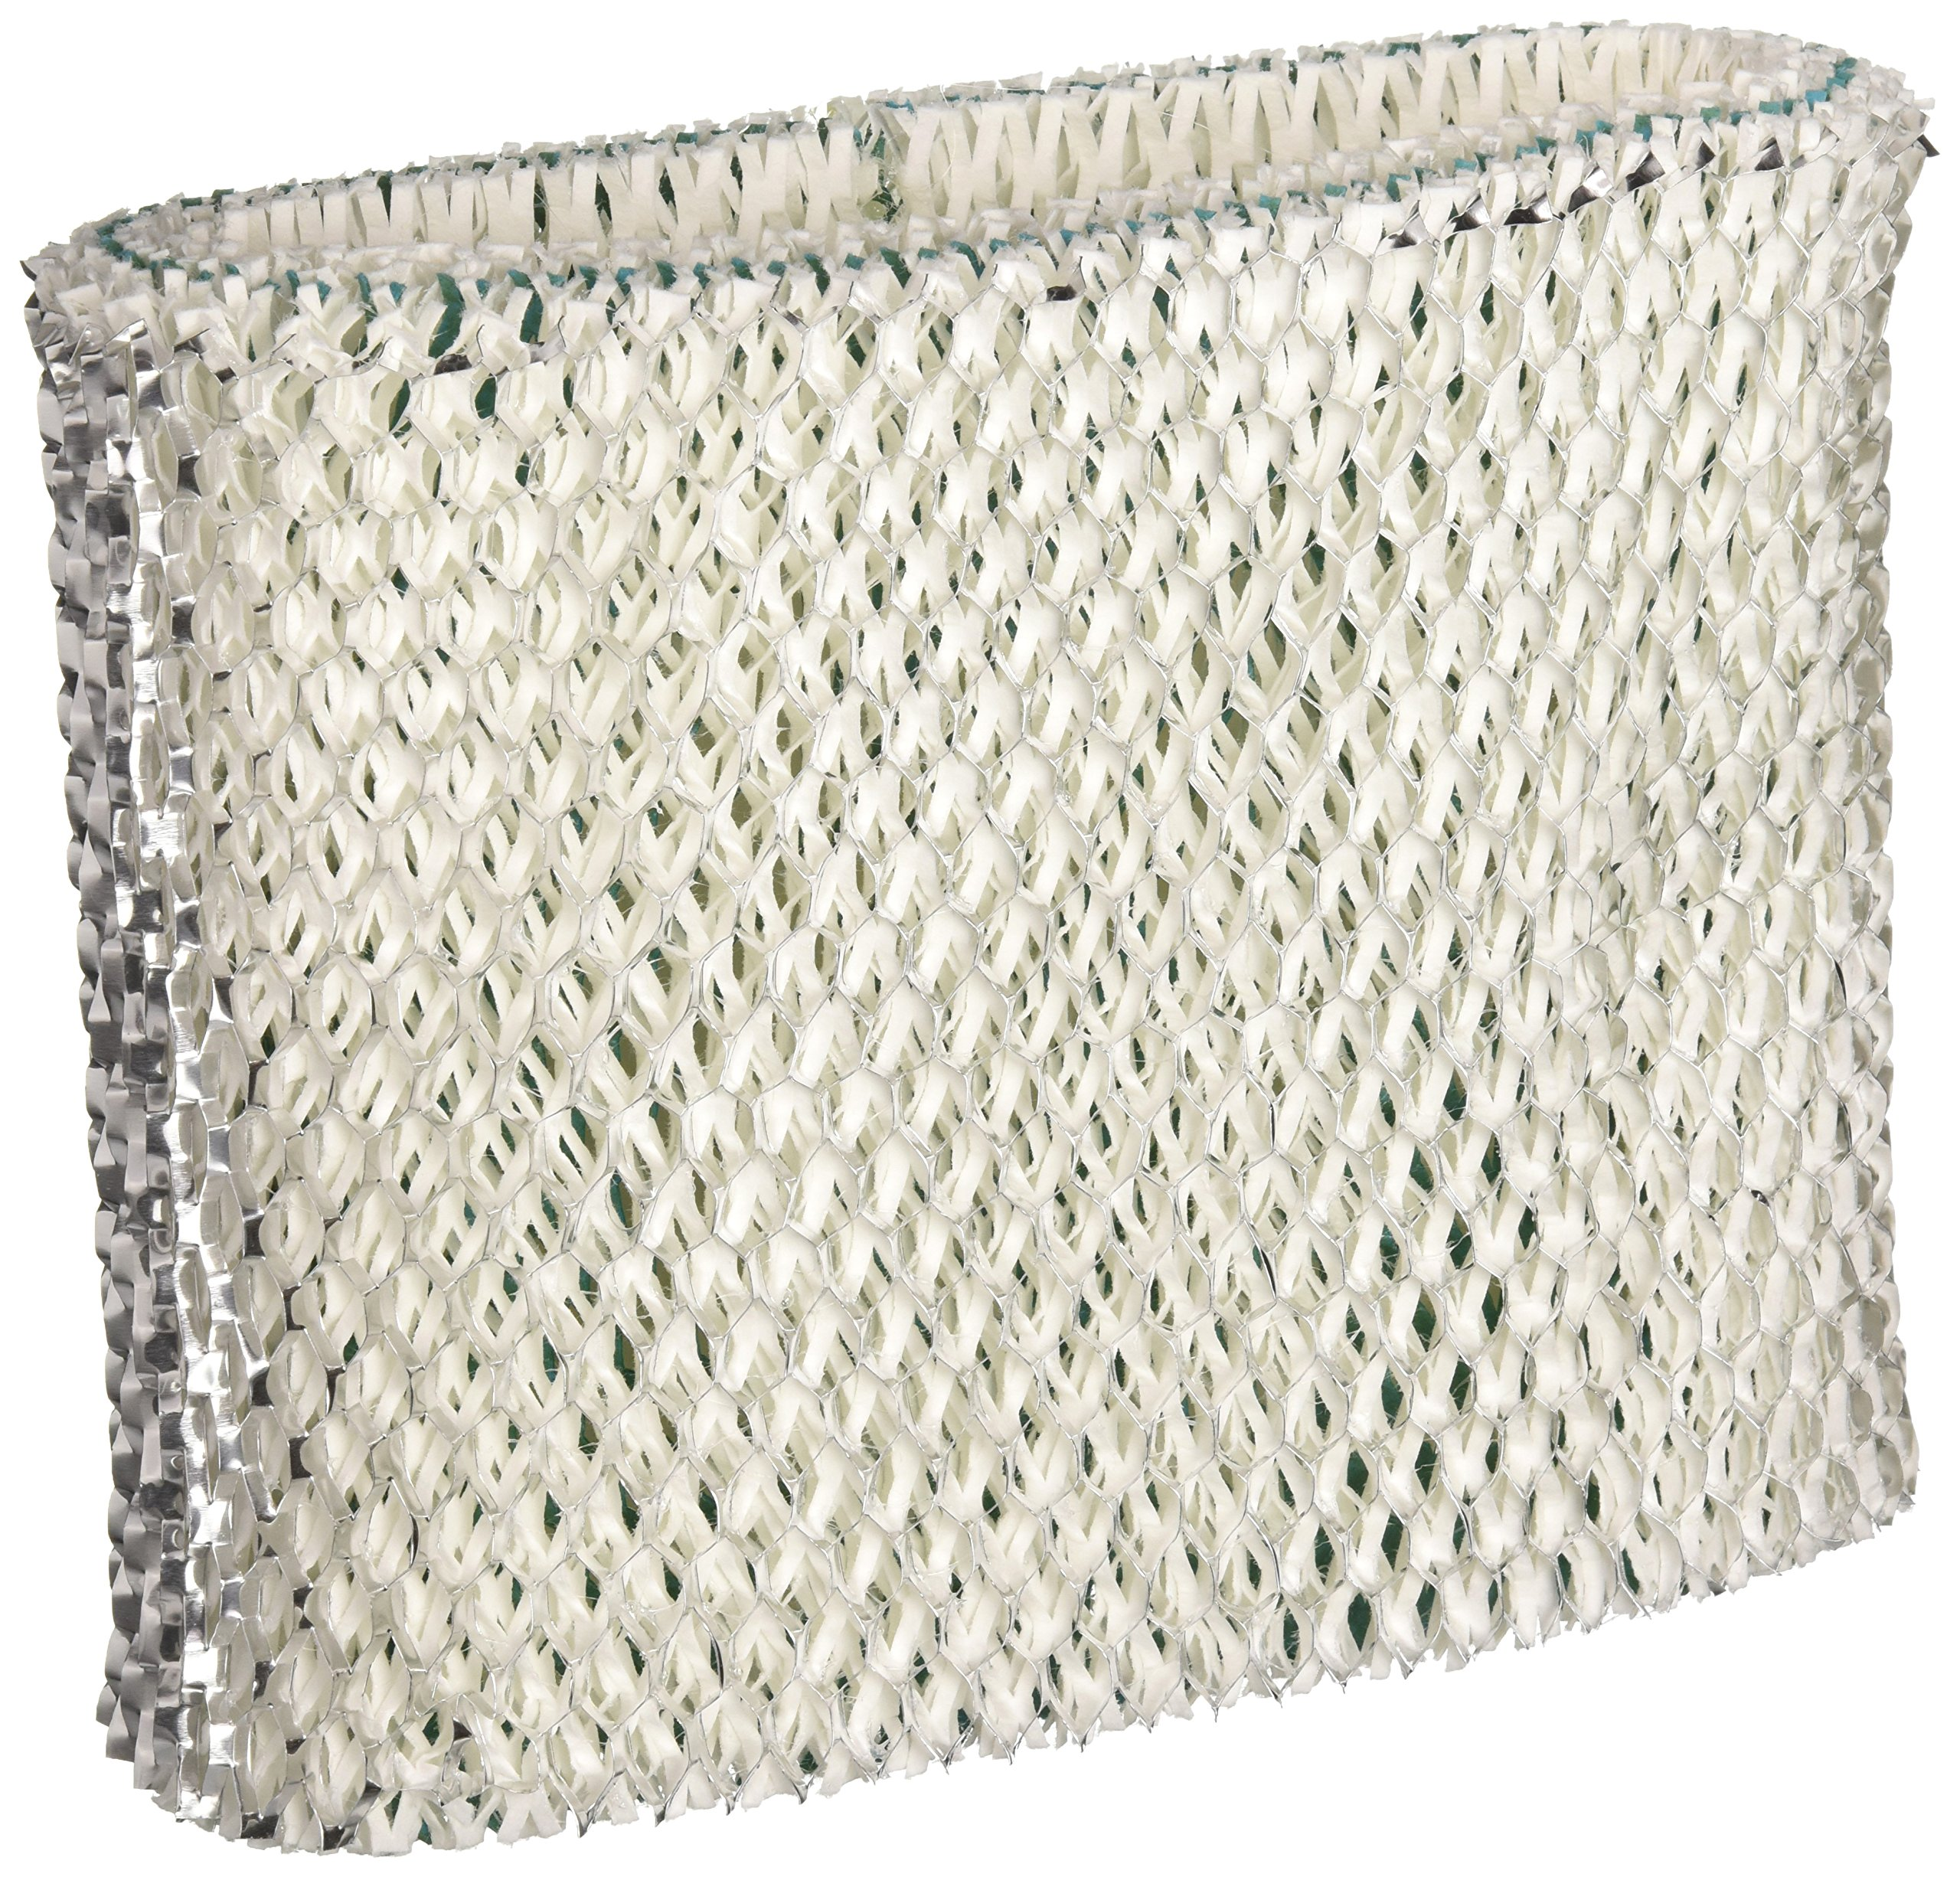 BestAir H65, Holmes Replacement, Paper Wick Humidifier Filter, 8.2'' x 2.7'' x 10'', 6 pack